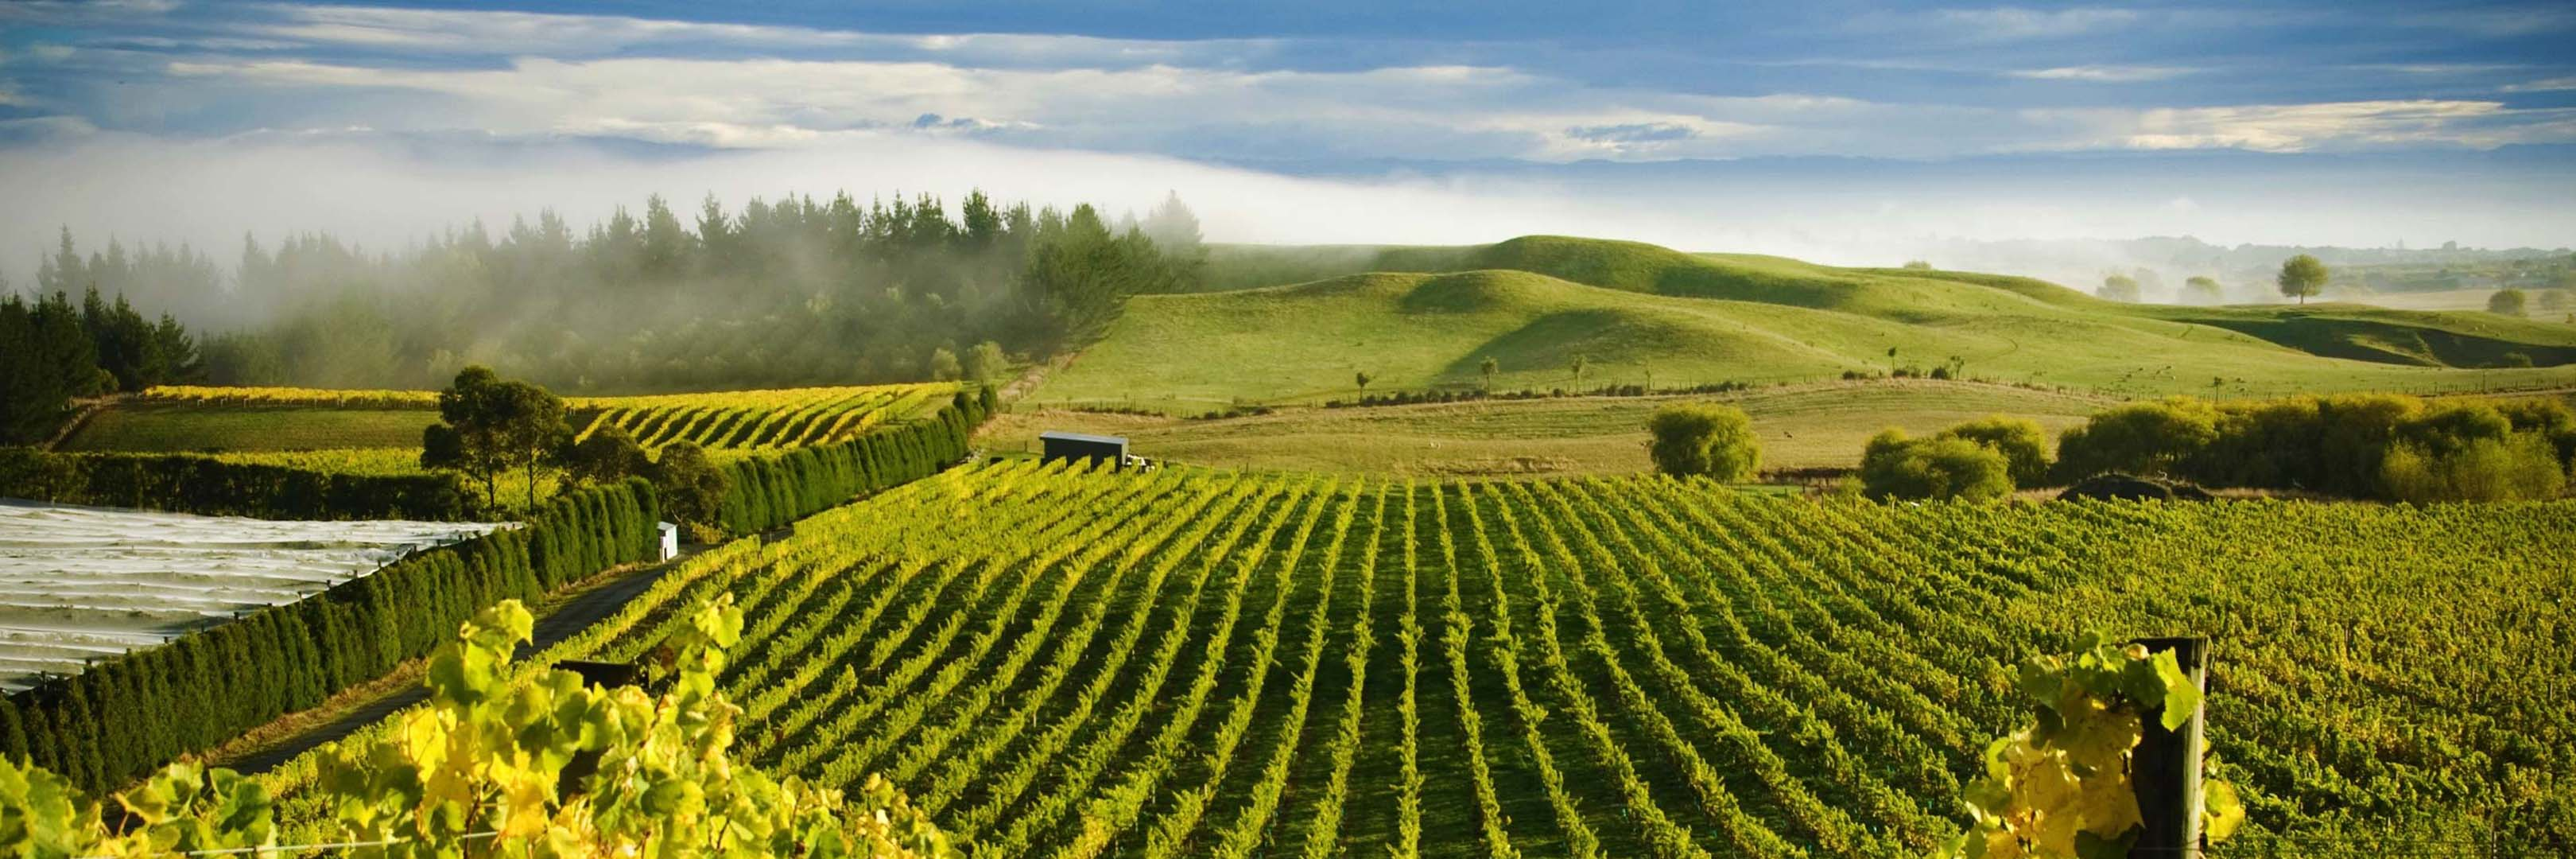 Looking for New Zealand wines? Buy New Zealand red wines and white wines from Winery Philippines, #1 online wine store for the best New Zealand wine brands and New Zealand wine types in the Philippines.